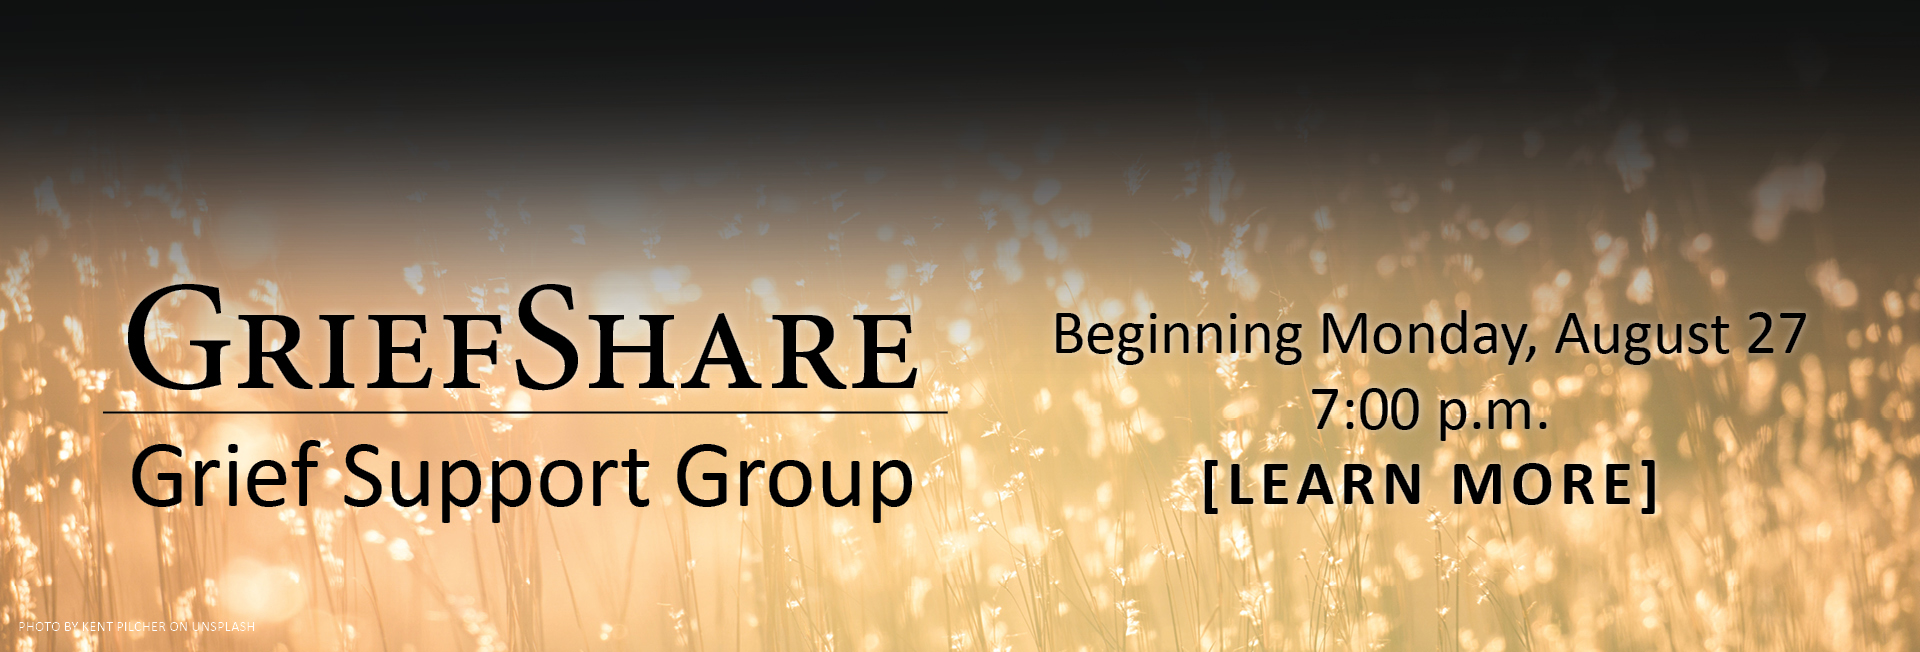 Grief Support Group Meeting on Mondays, August 27 - November 26 -- 7-9 p.m